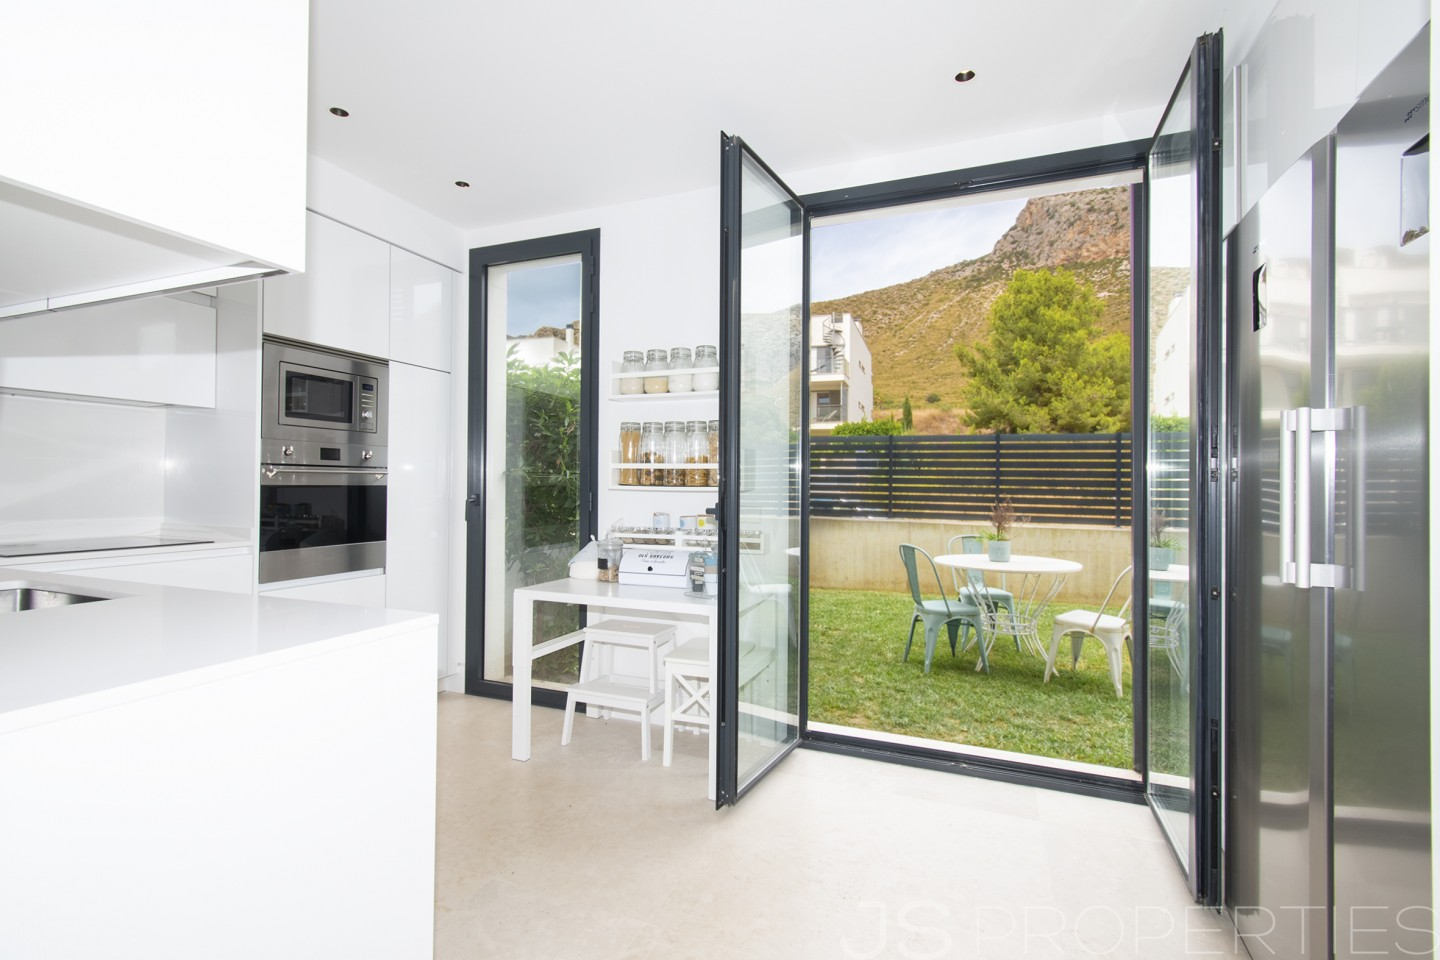 MAGNIFICENT AND MODERN GROUND FLOOR IN PUERTO POLLENSA